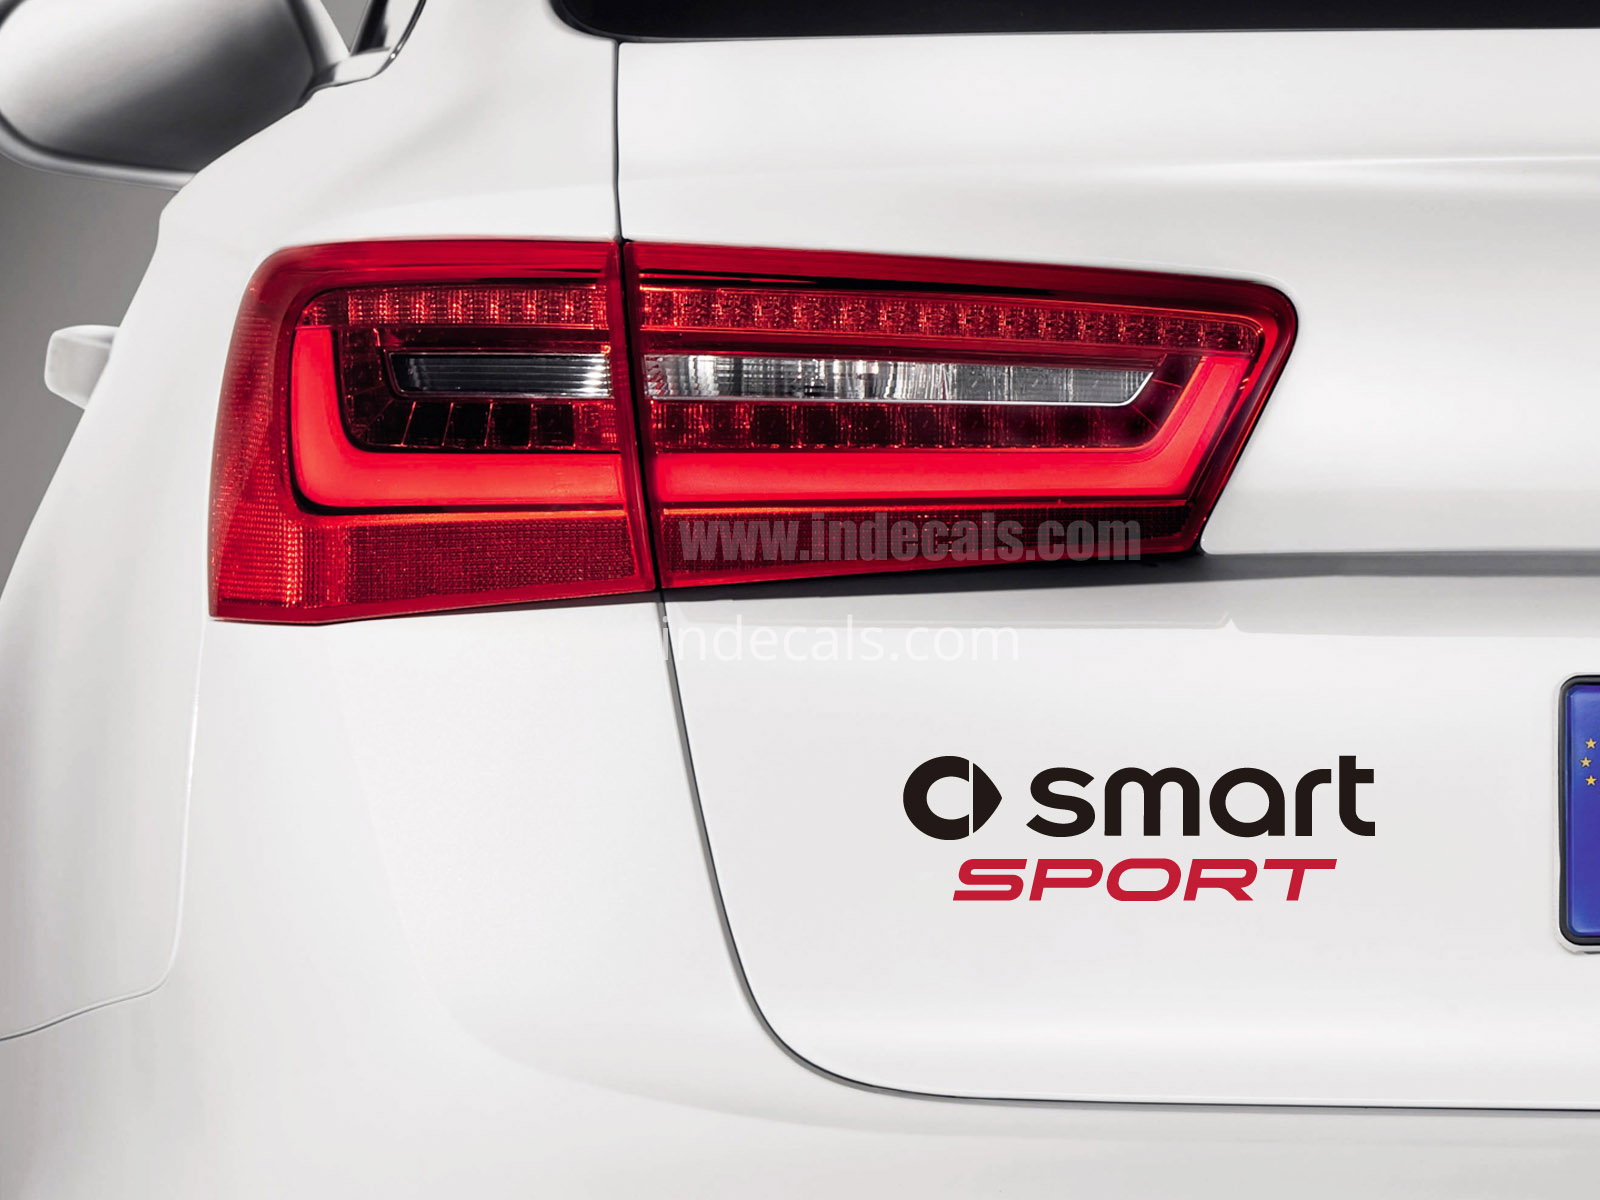 1 x Smart Sports Sticker for Trunk - Black & Red